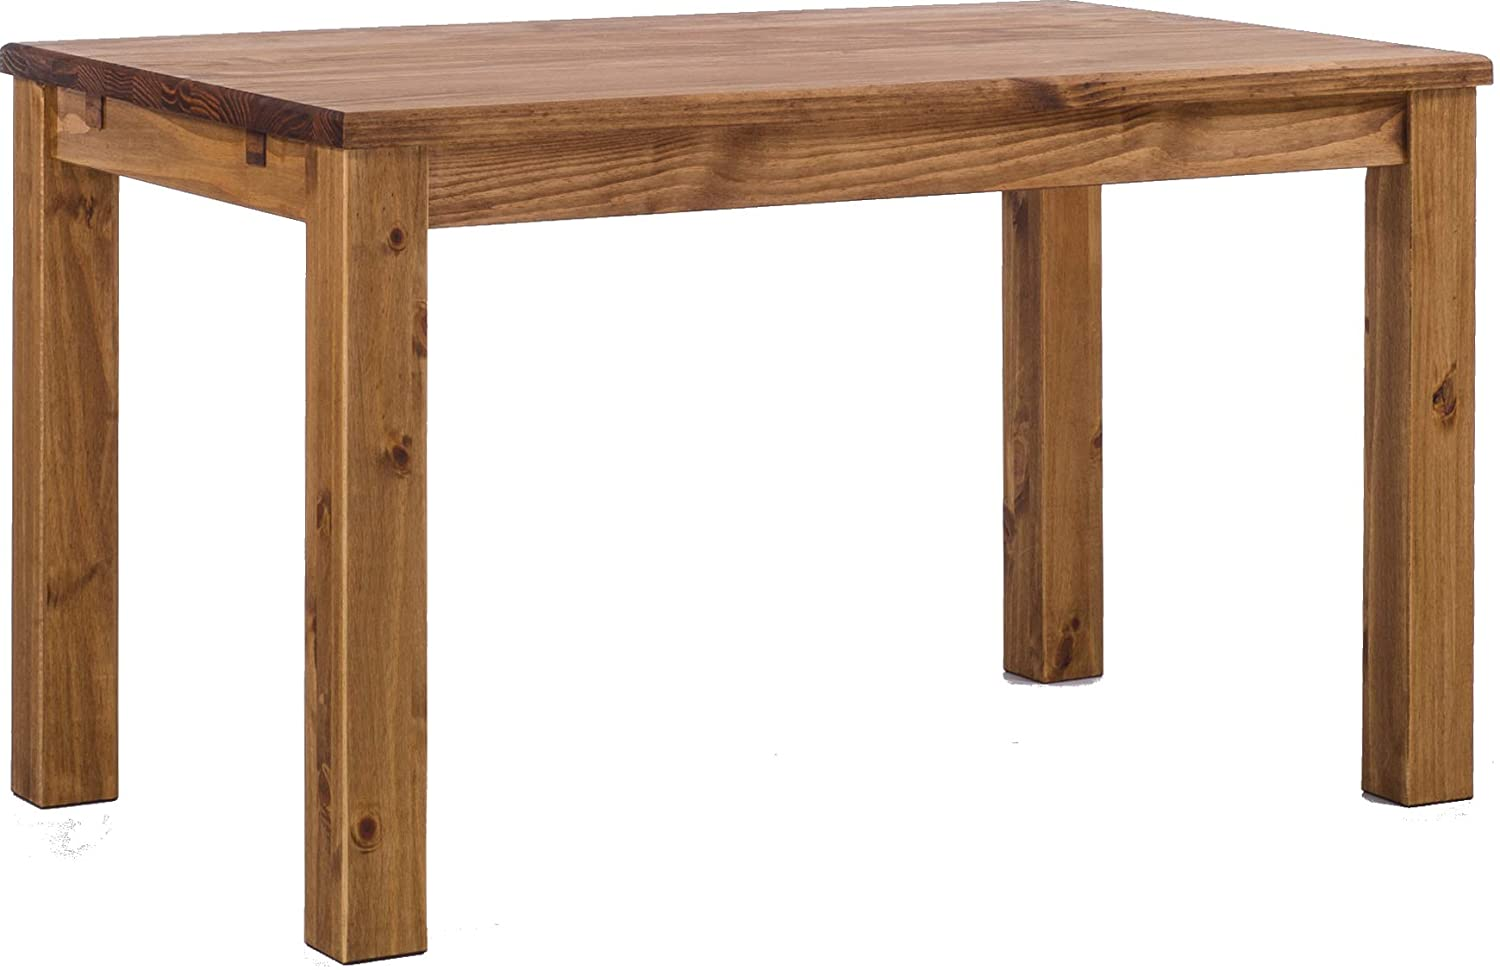 TableChamp Dining Room Table Rio 47 x 30 Brazil Solid Wood Pine Oiled Extension Extendable